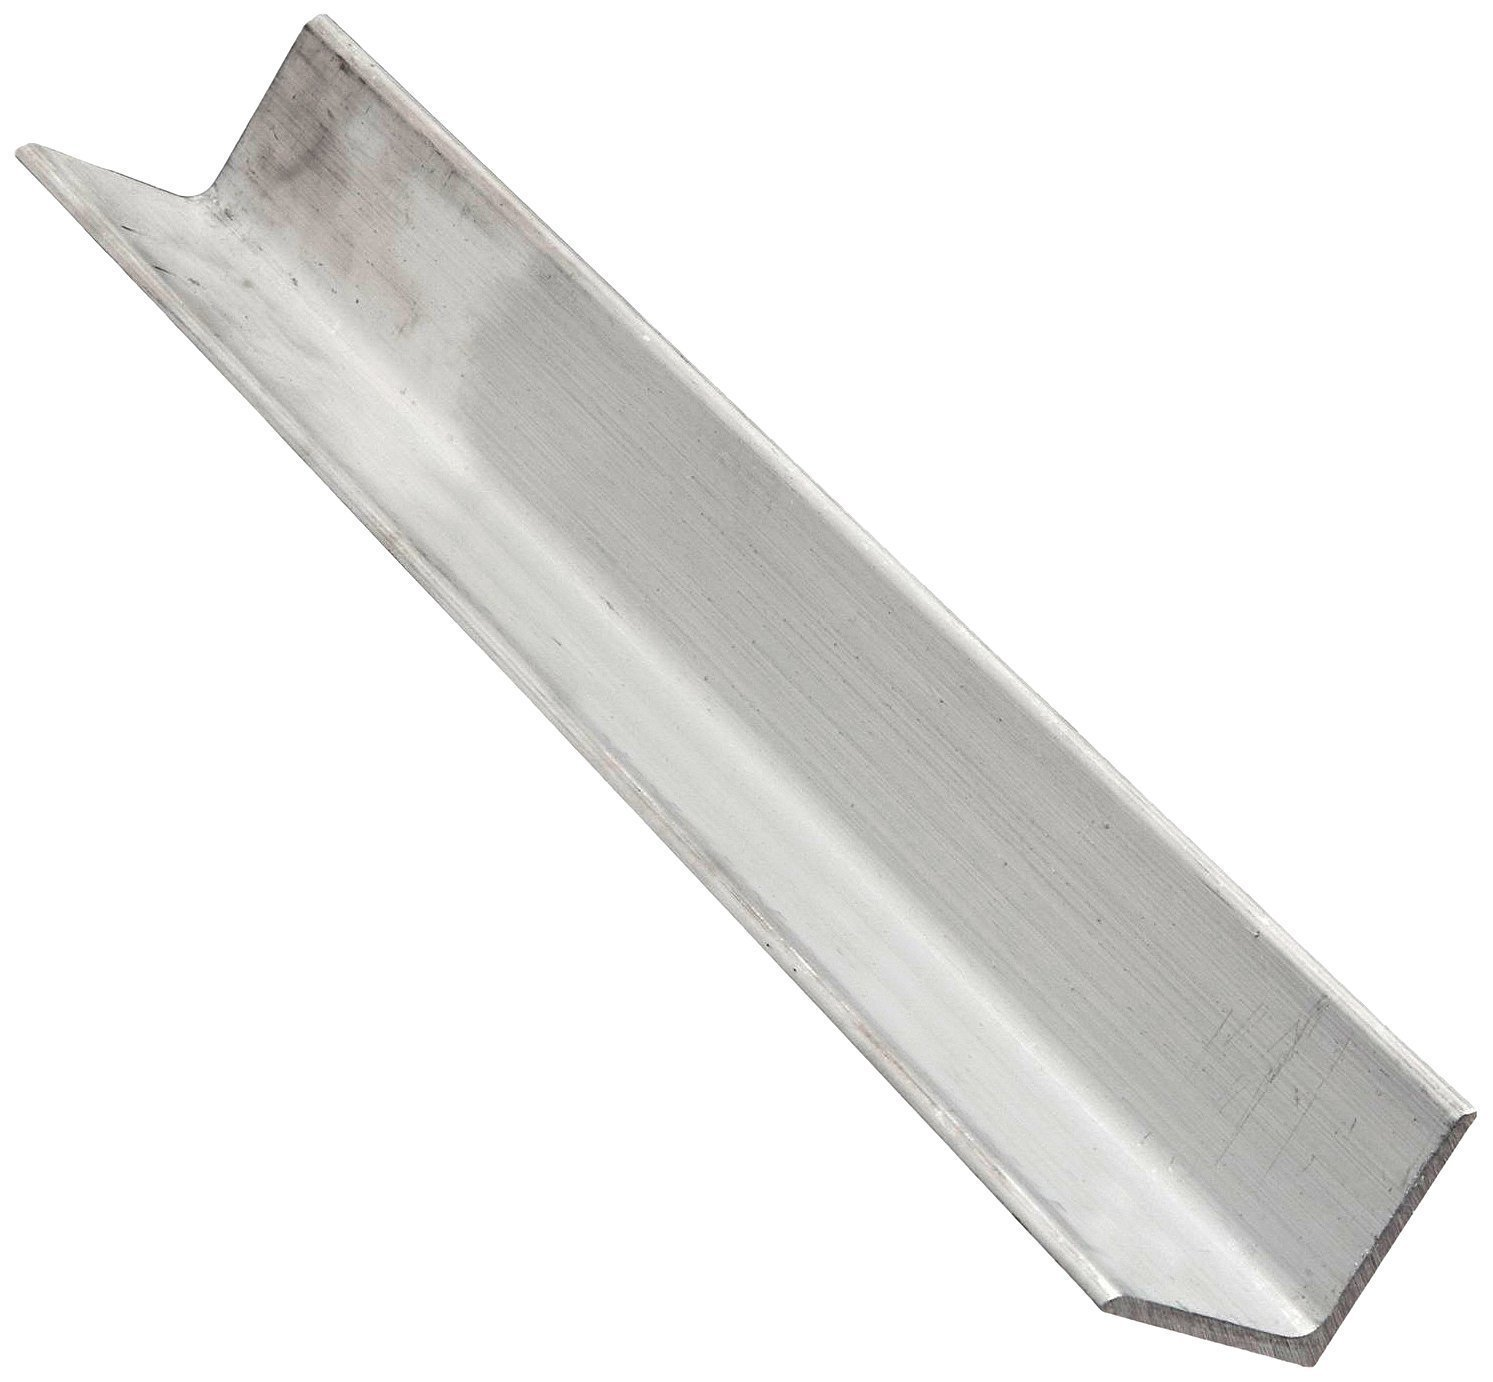 RMP 6061-T6 Aluminum American Standard Angle, 1-1/4 Inch x 1-1/4 Inch Leg Length, 1/4 Inch Wall, 72 Inch Length, Rounded Corners, Extruded, Unpolished (Mill) Finish